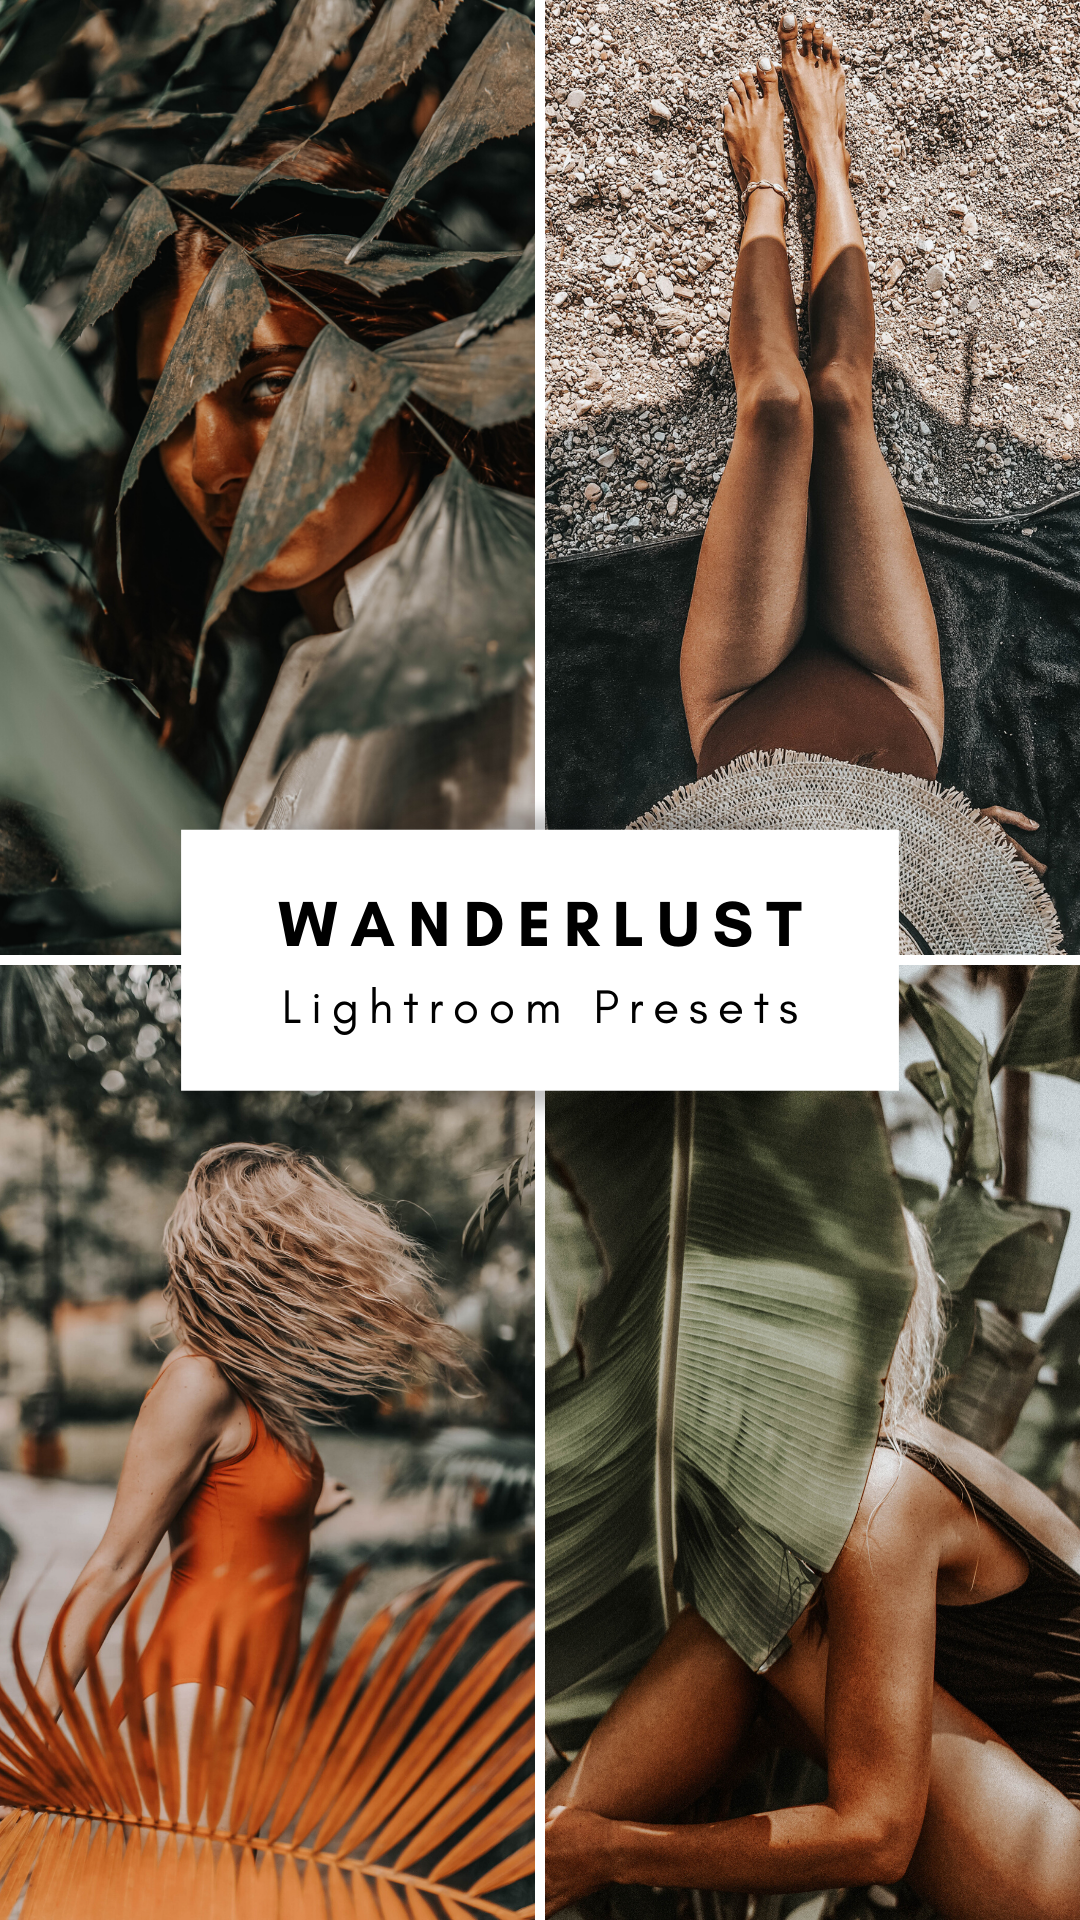 Make your photos more beautiful with these mobile filters! - Mobile Lightroom Presets for bloggers and influencers. #lightroom #photoshop #presets #moody #selfie...